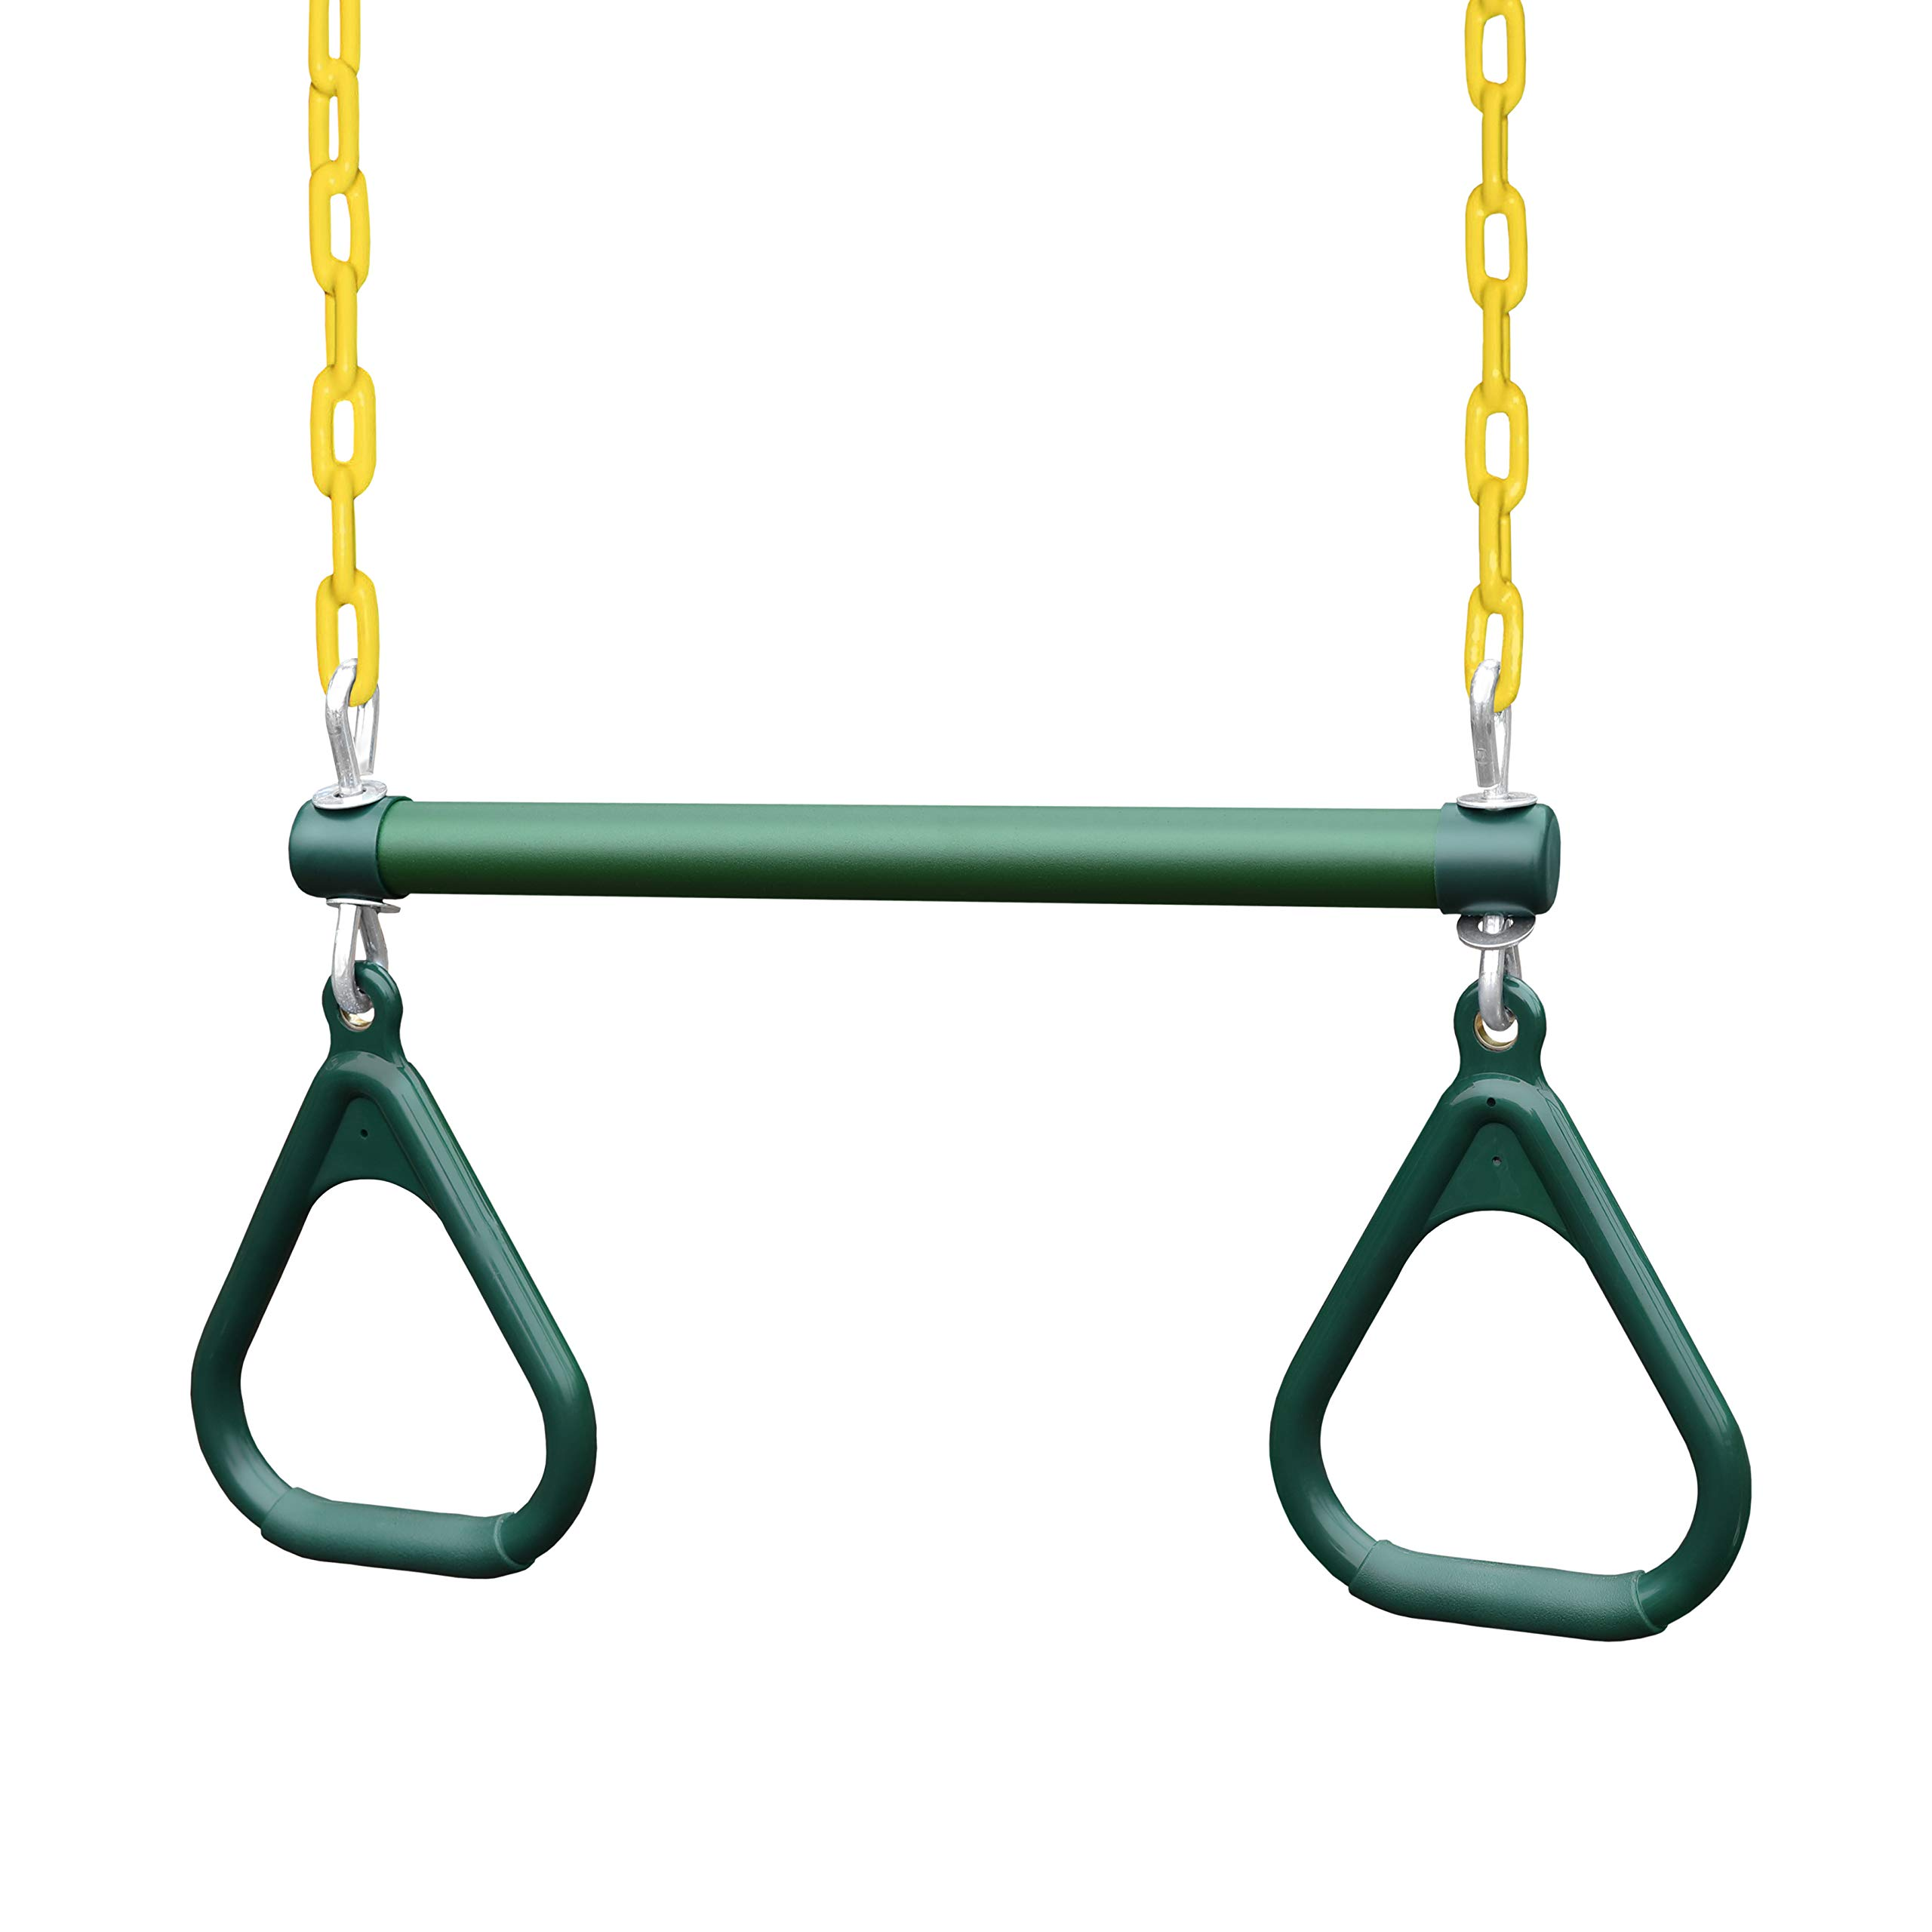 Gorilla Playsets 17'' Trapeze Bar w/Rings - Green w/Yellow Chains by Gorilla Playsets